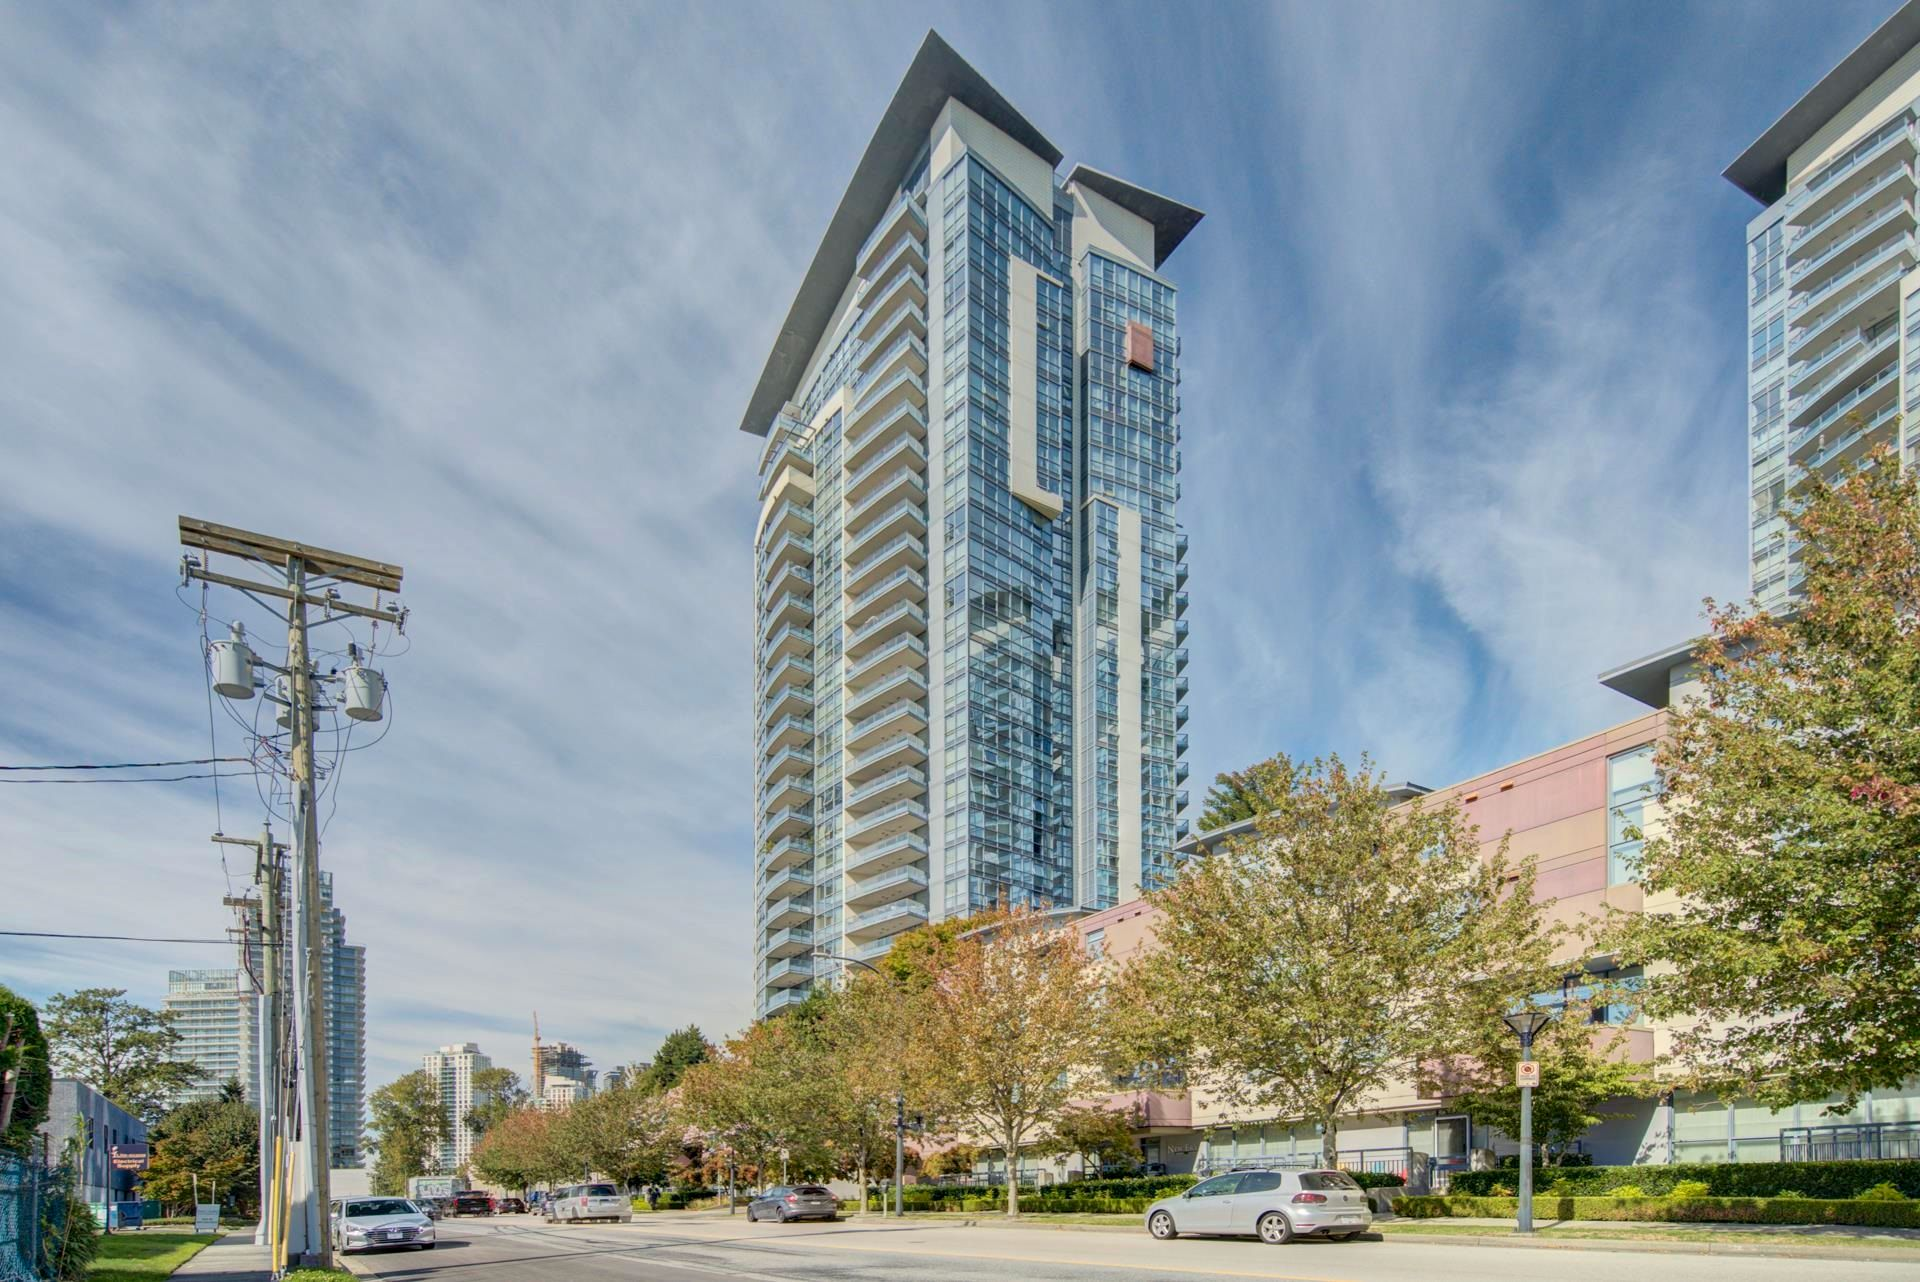 Main Photo: 1206 5611 GORING STREET in Burnaby: Central BN Condo for sale (Burnaby North)  : MLS®# R2619138